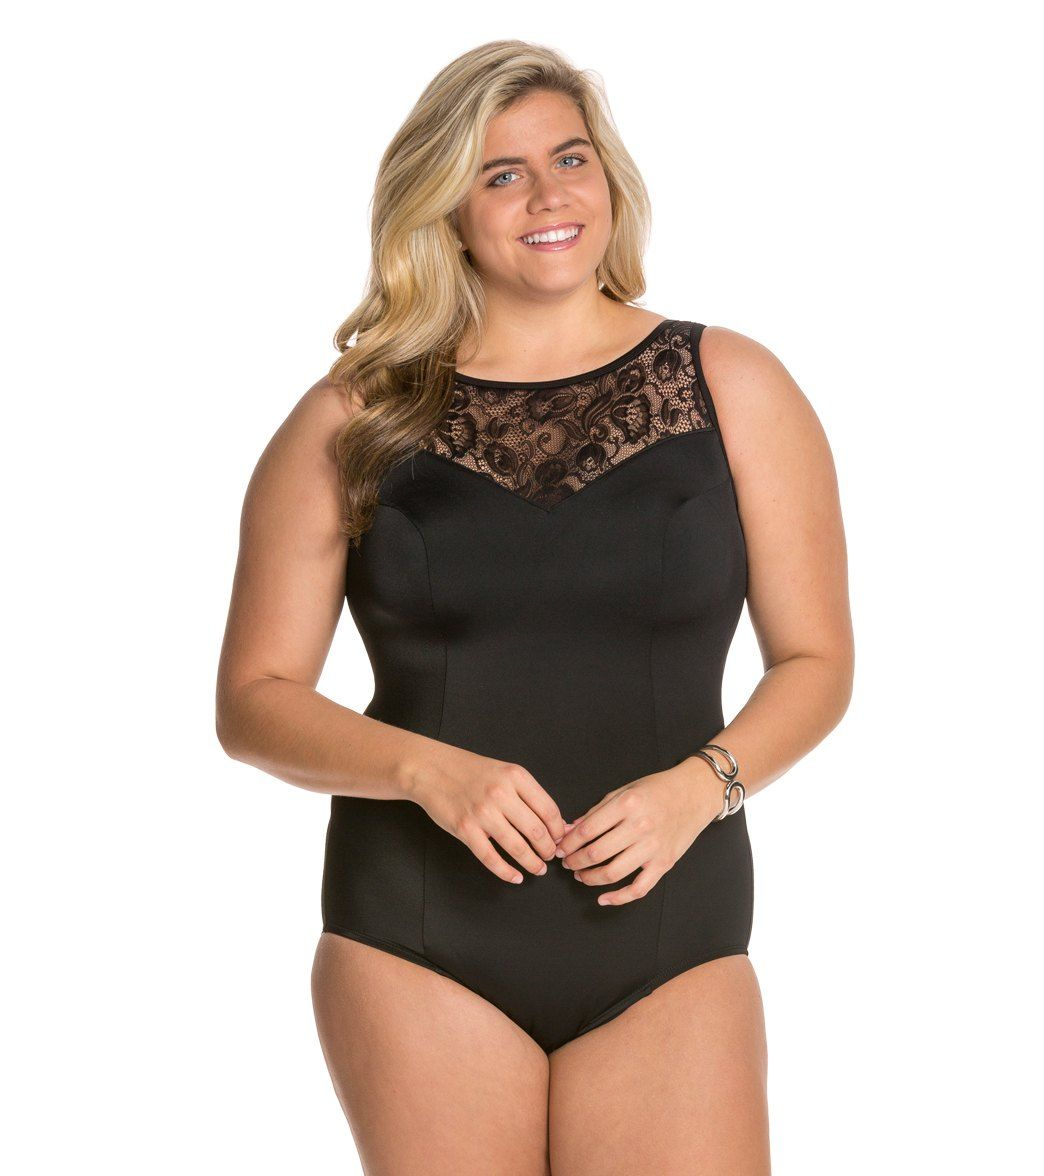 ddb648445c0 Longitude Plus Size Sheer Love Highneck One Piece Swimsuit at SwimOutlet.com  - Free Shipping